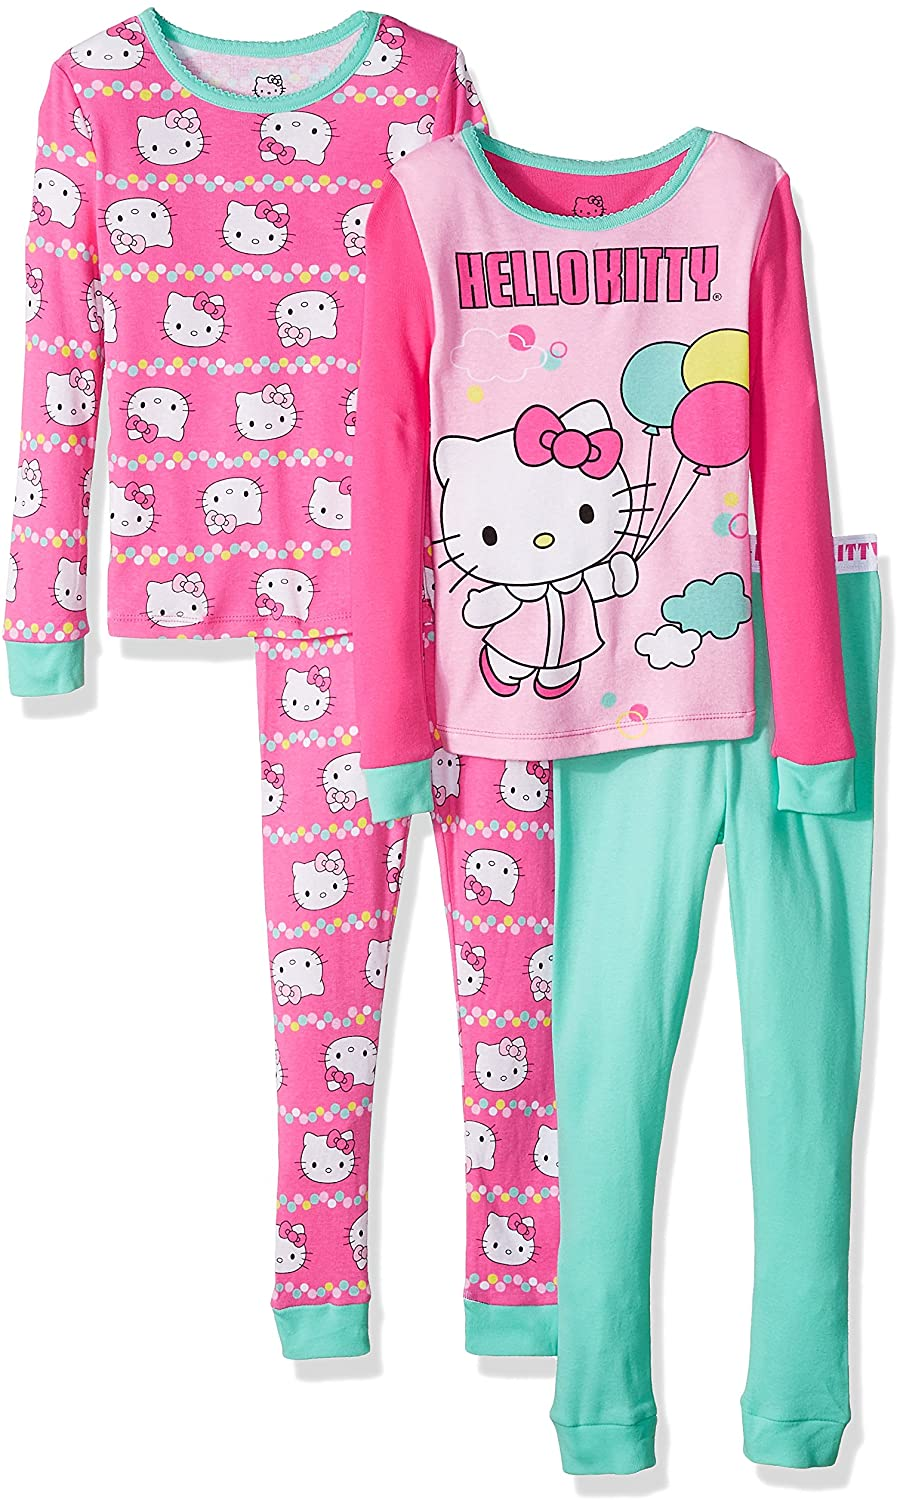 hello kitty pijamas 11